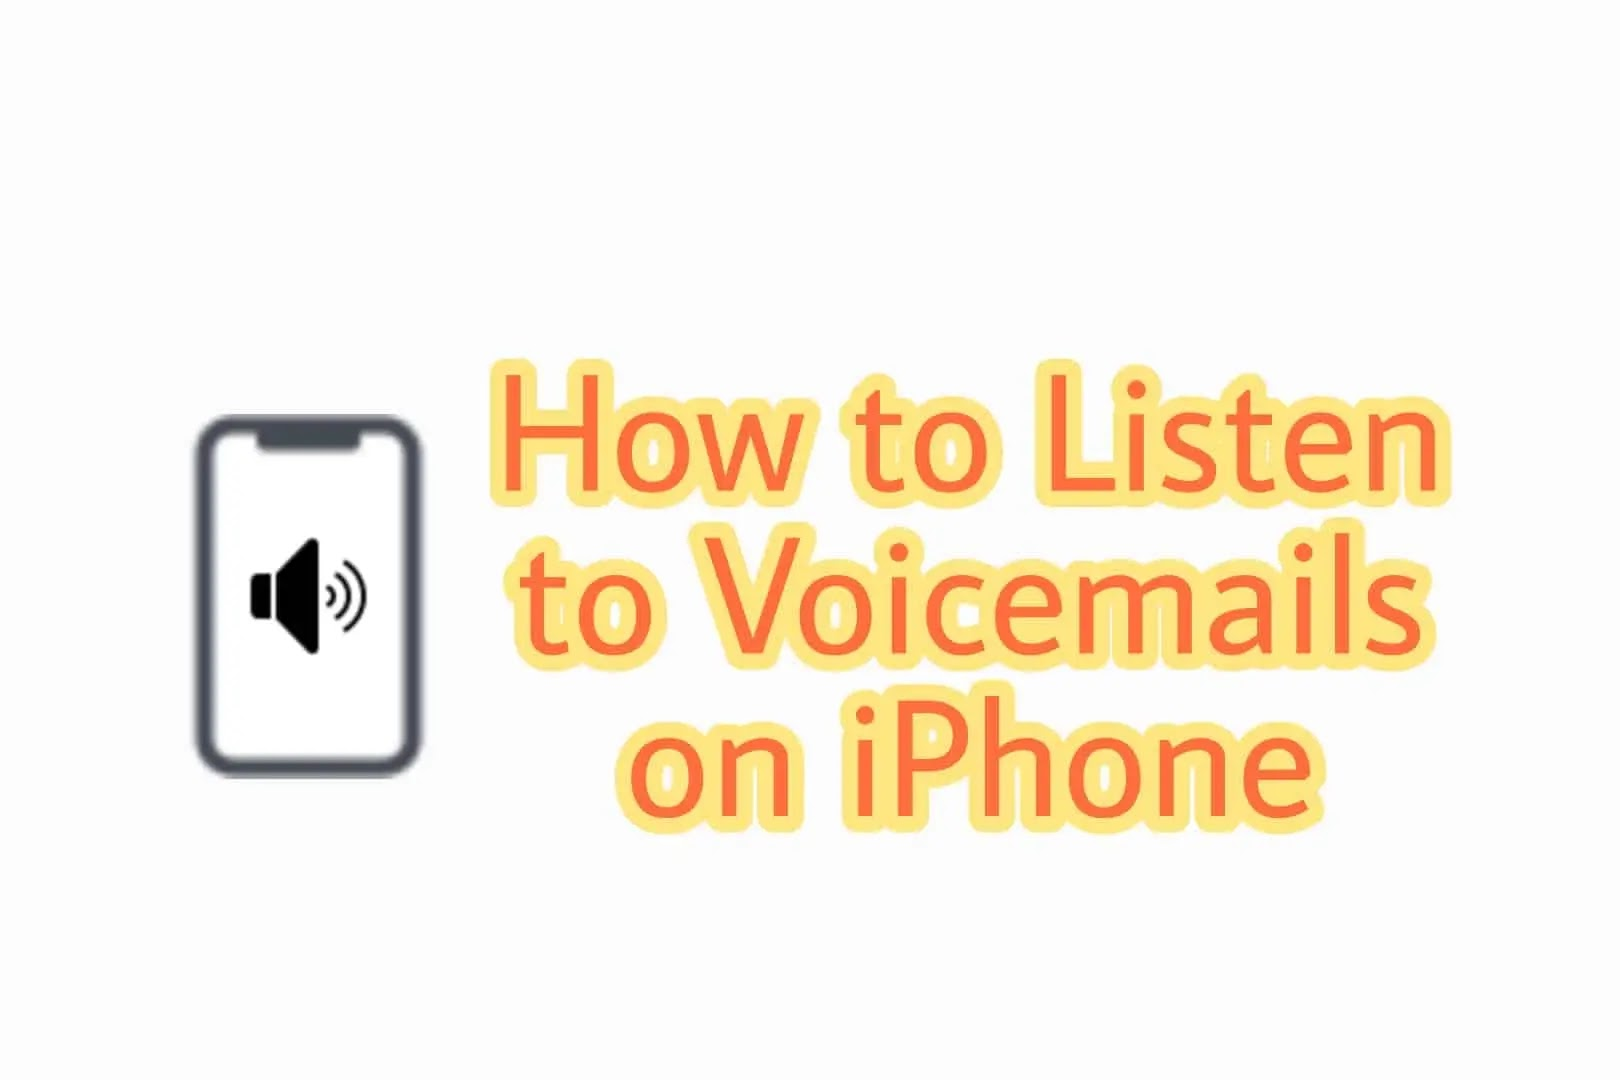 How to listen to voicemails on iphone